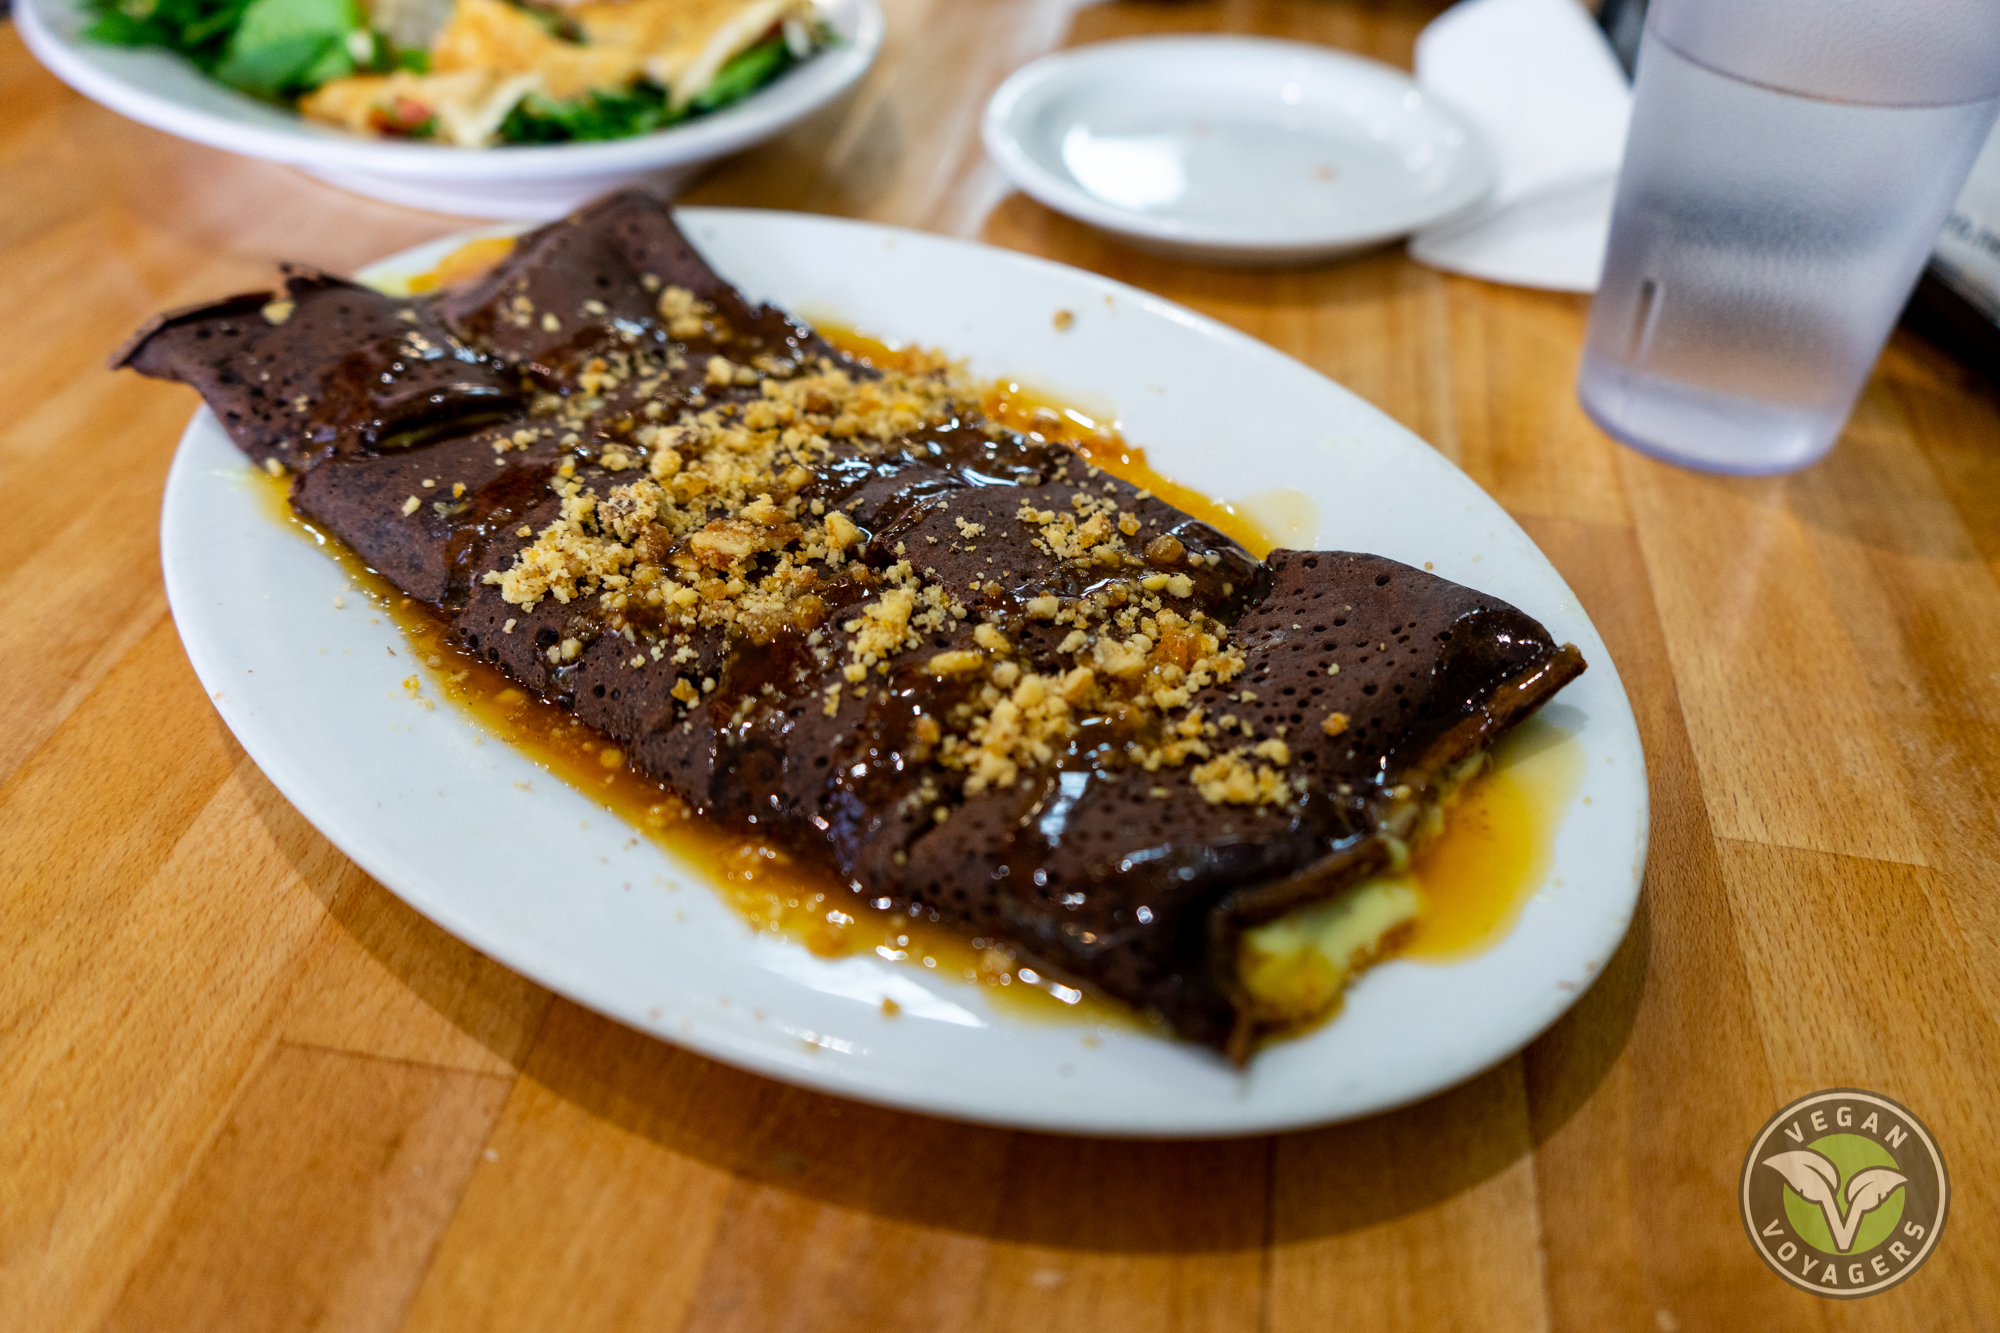 Crepe Bistro | The Vegan Guide to the Bay Area, California